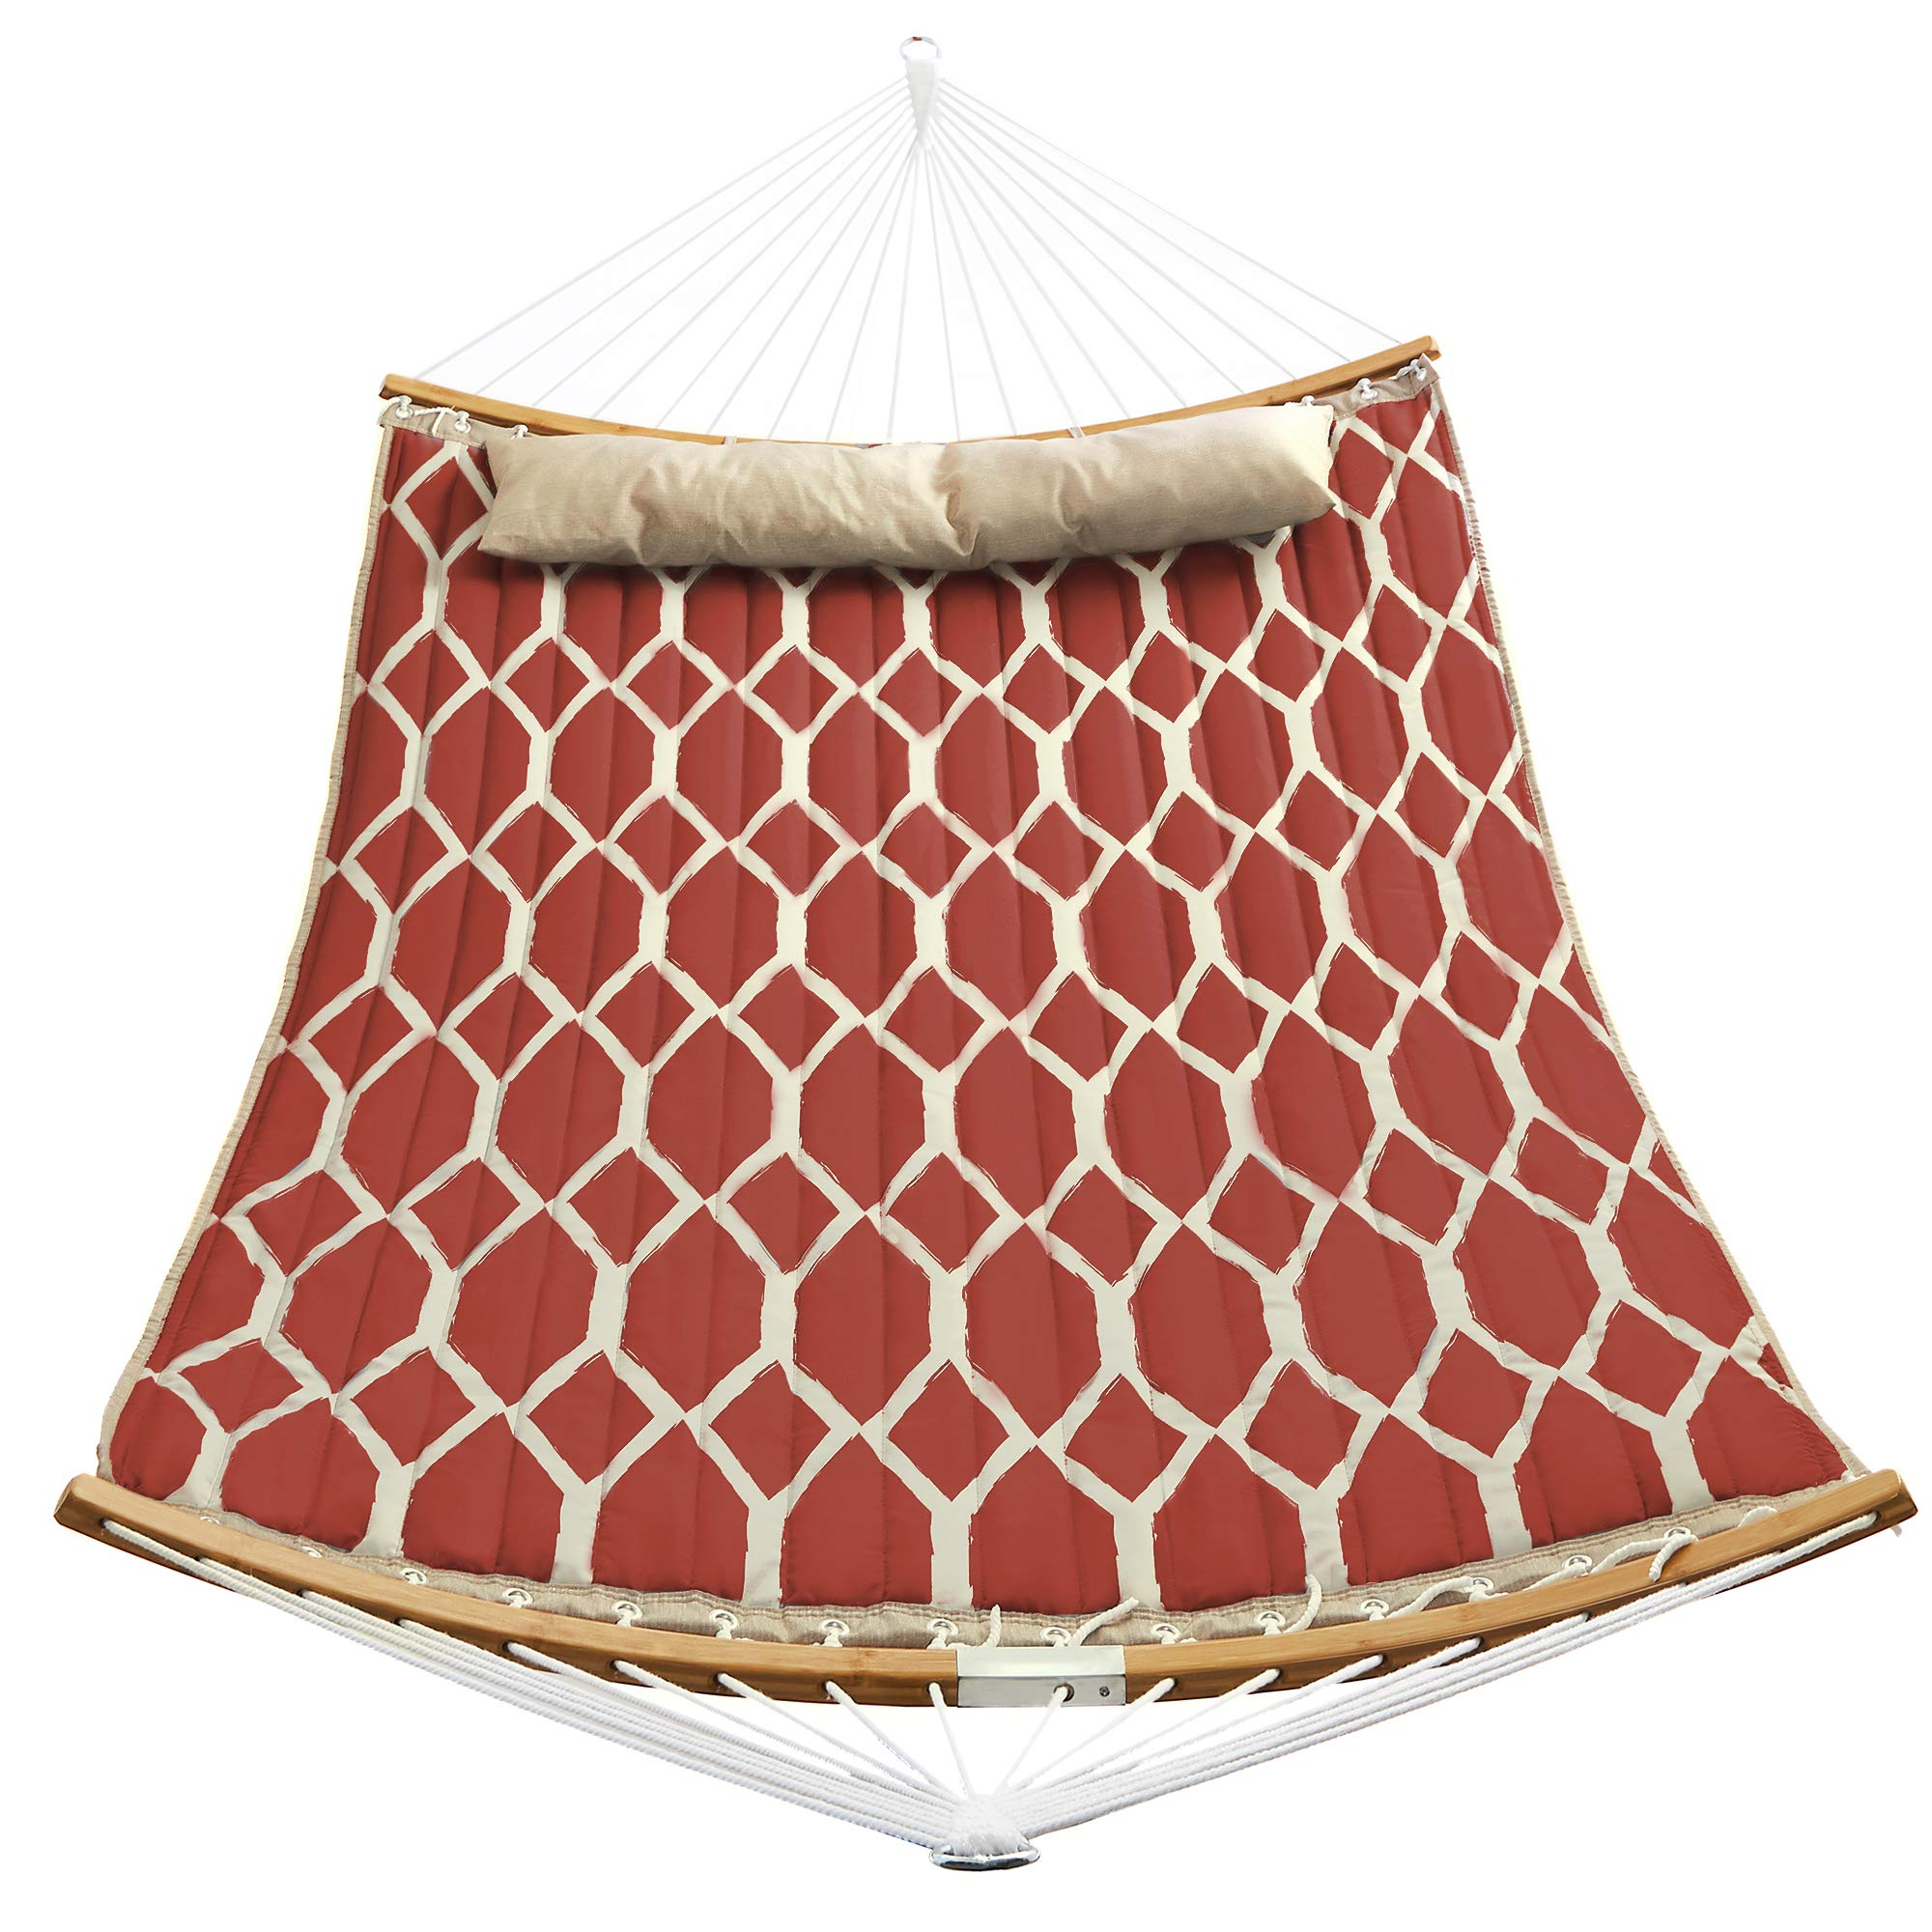 SONGMICS Hammock, Quilted Hammock with Curved Bamboo Spreaders, Pillow, 78.7 x 55.1 Inches, Portable Padded Hammock Holds up to 495 lb, Red and Beige Rhombus UGDC034R02